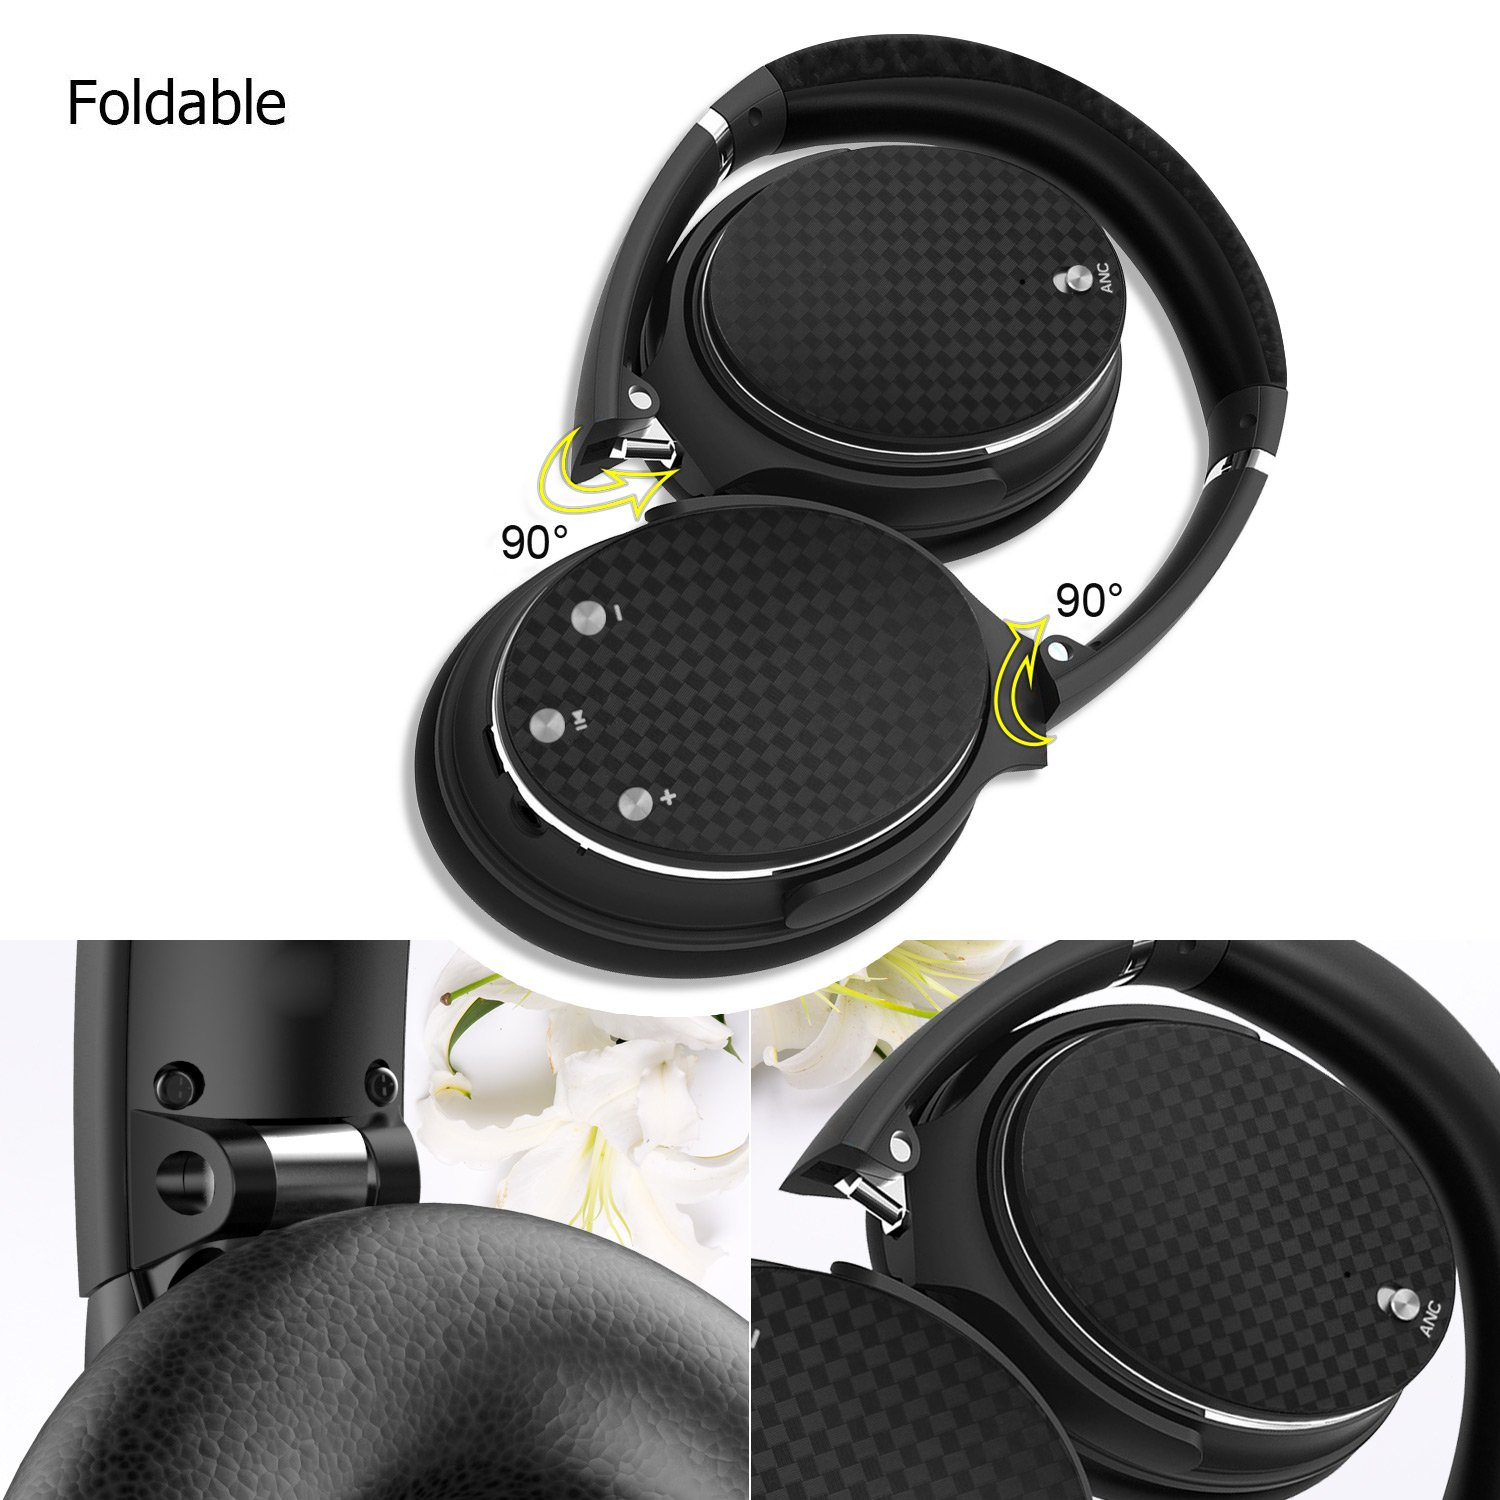 Active Noise Cancelling Headphones,Barsone Hi-Fi Bluetooth Wireless Super Bass Headphones Over Ear, Bluetooth Noise Canceling Headsets,USB Rechargeable Handsfree headphone with Mic